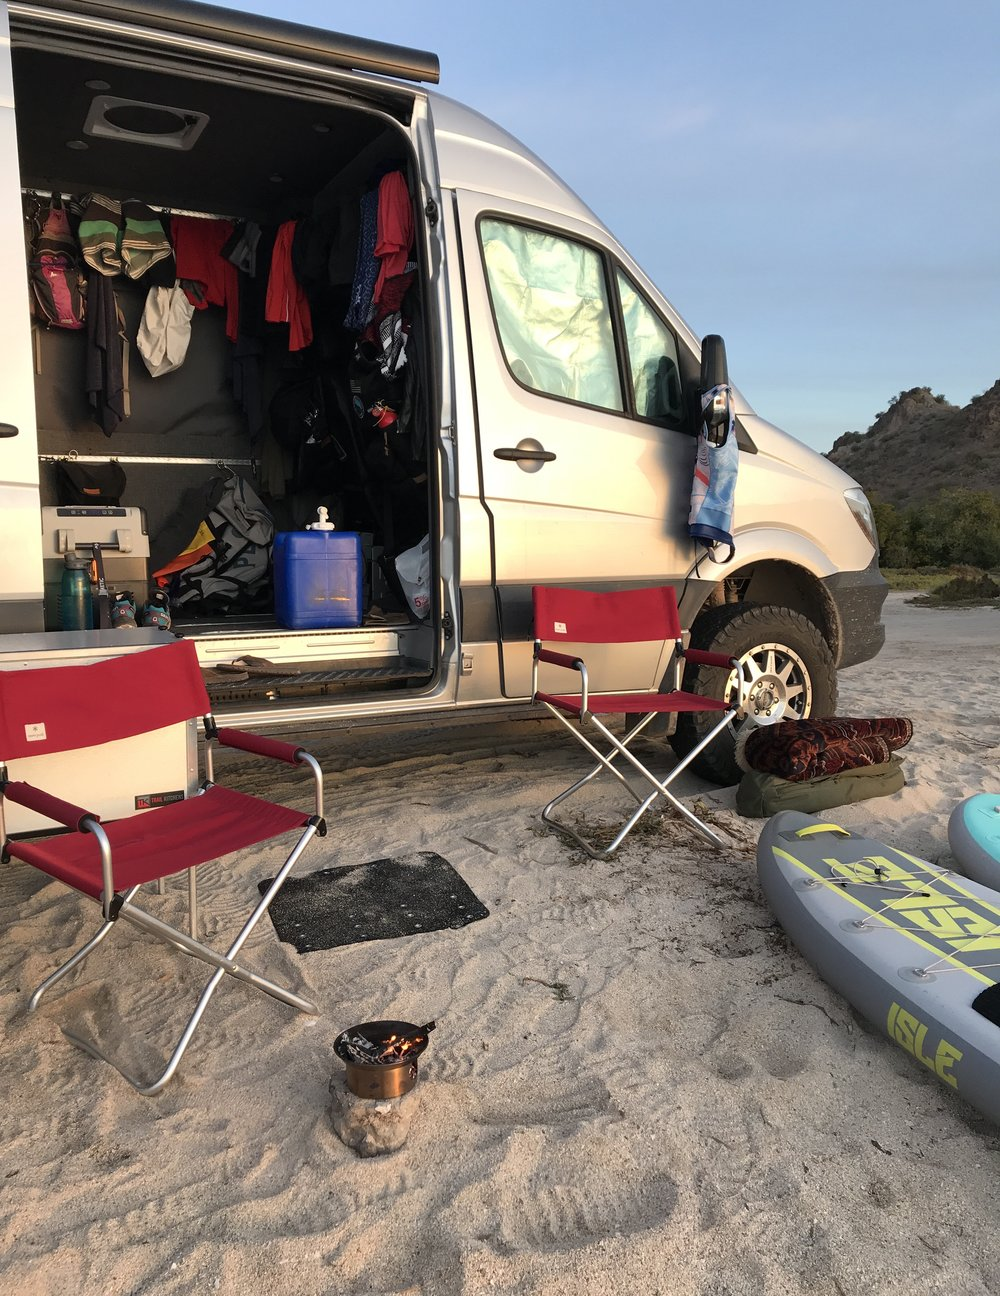 Beachlife/Vanlife in all it's glory.